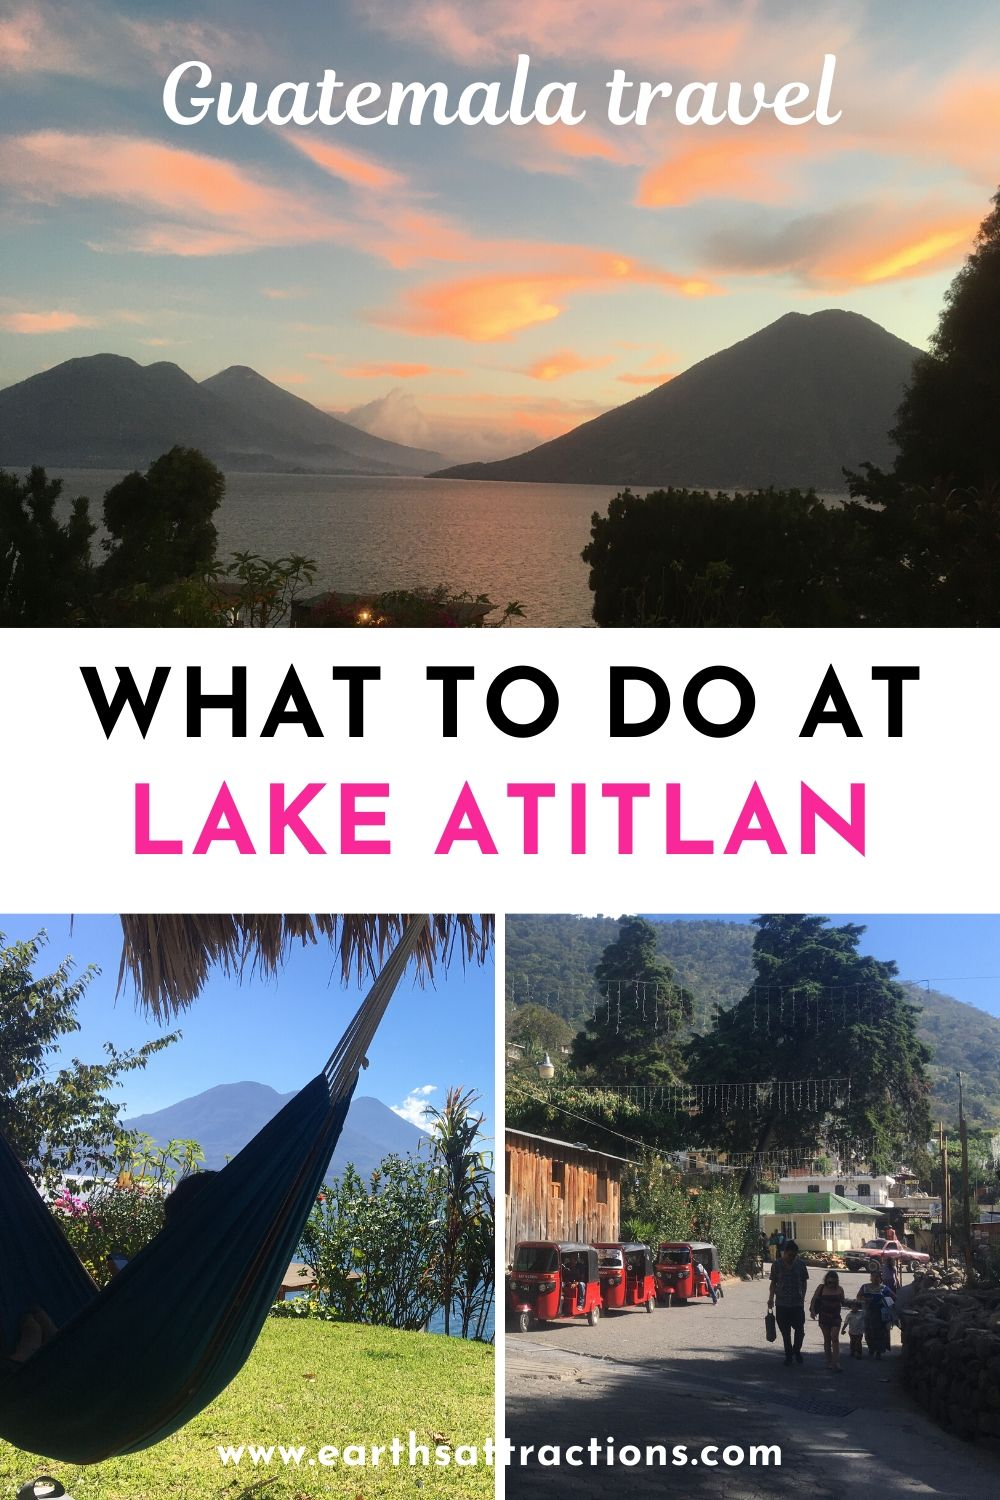 What to do in Lake Atitlan, Guatemala. Discover how to spend 7 days in Lake Atitlan and have a memorable Lake Atitlan holiday. Find out the best Lake Atitlan villages, top hikes near Lake Atitlan, and the best places to visit in 7 days in Lake Atitlan. #lakeatitlan #atitlanguide #atitlanitinerary #atitlanguatemala #earthsattractions #travelguides #america #centralamerica #traveldestinations